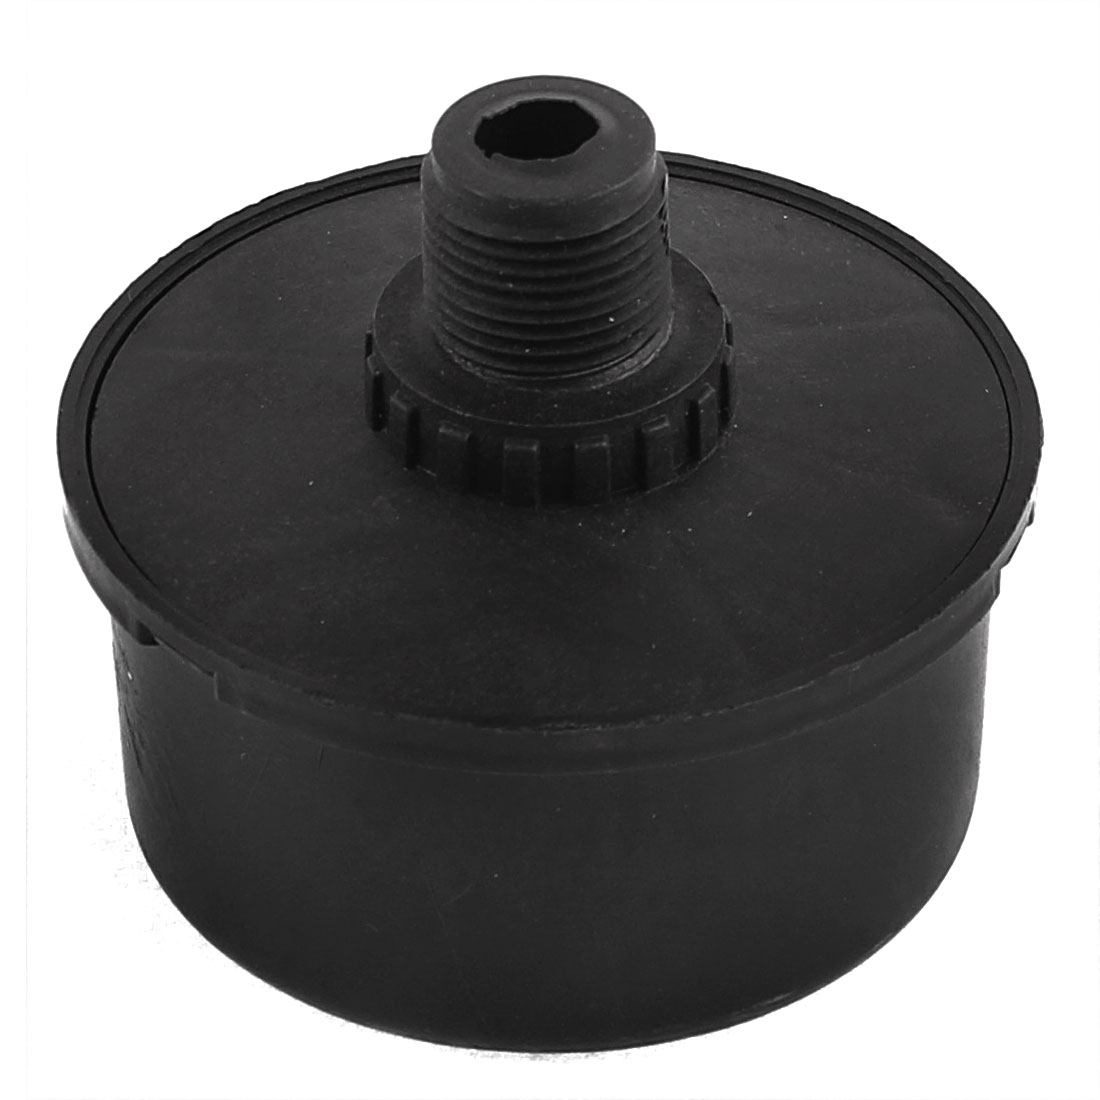 3/8BSP 16mm Thread Diameter Black Admitting Port Air Compressor Intake Filter Silencer Muffler